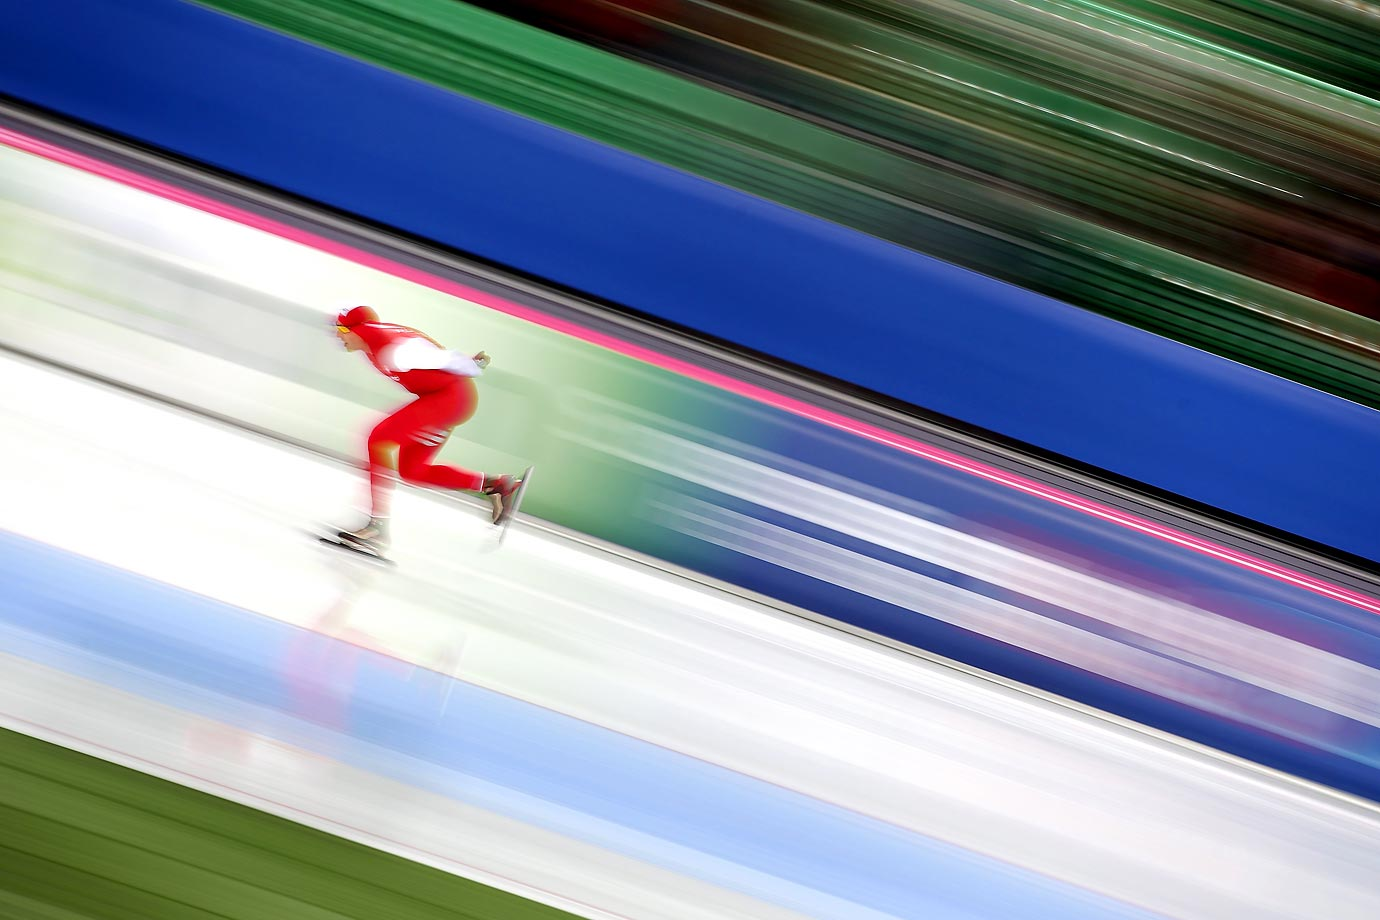 Bram Smallenbroek of Austria in the 5000-meters race at the ISU Speed Skating World Cup in Norway.